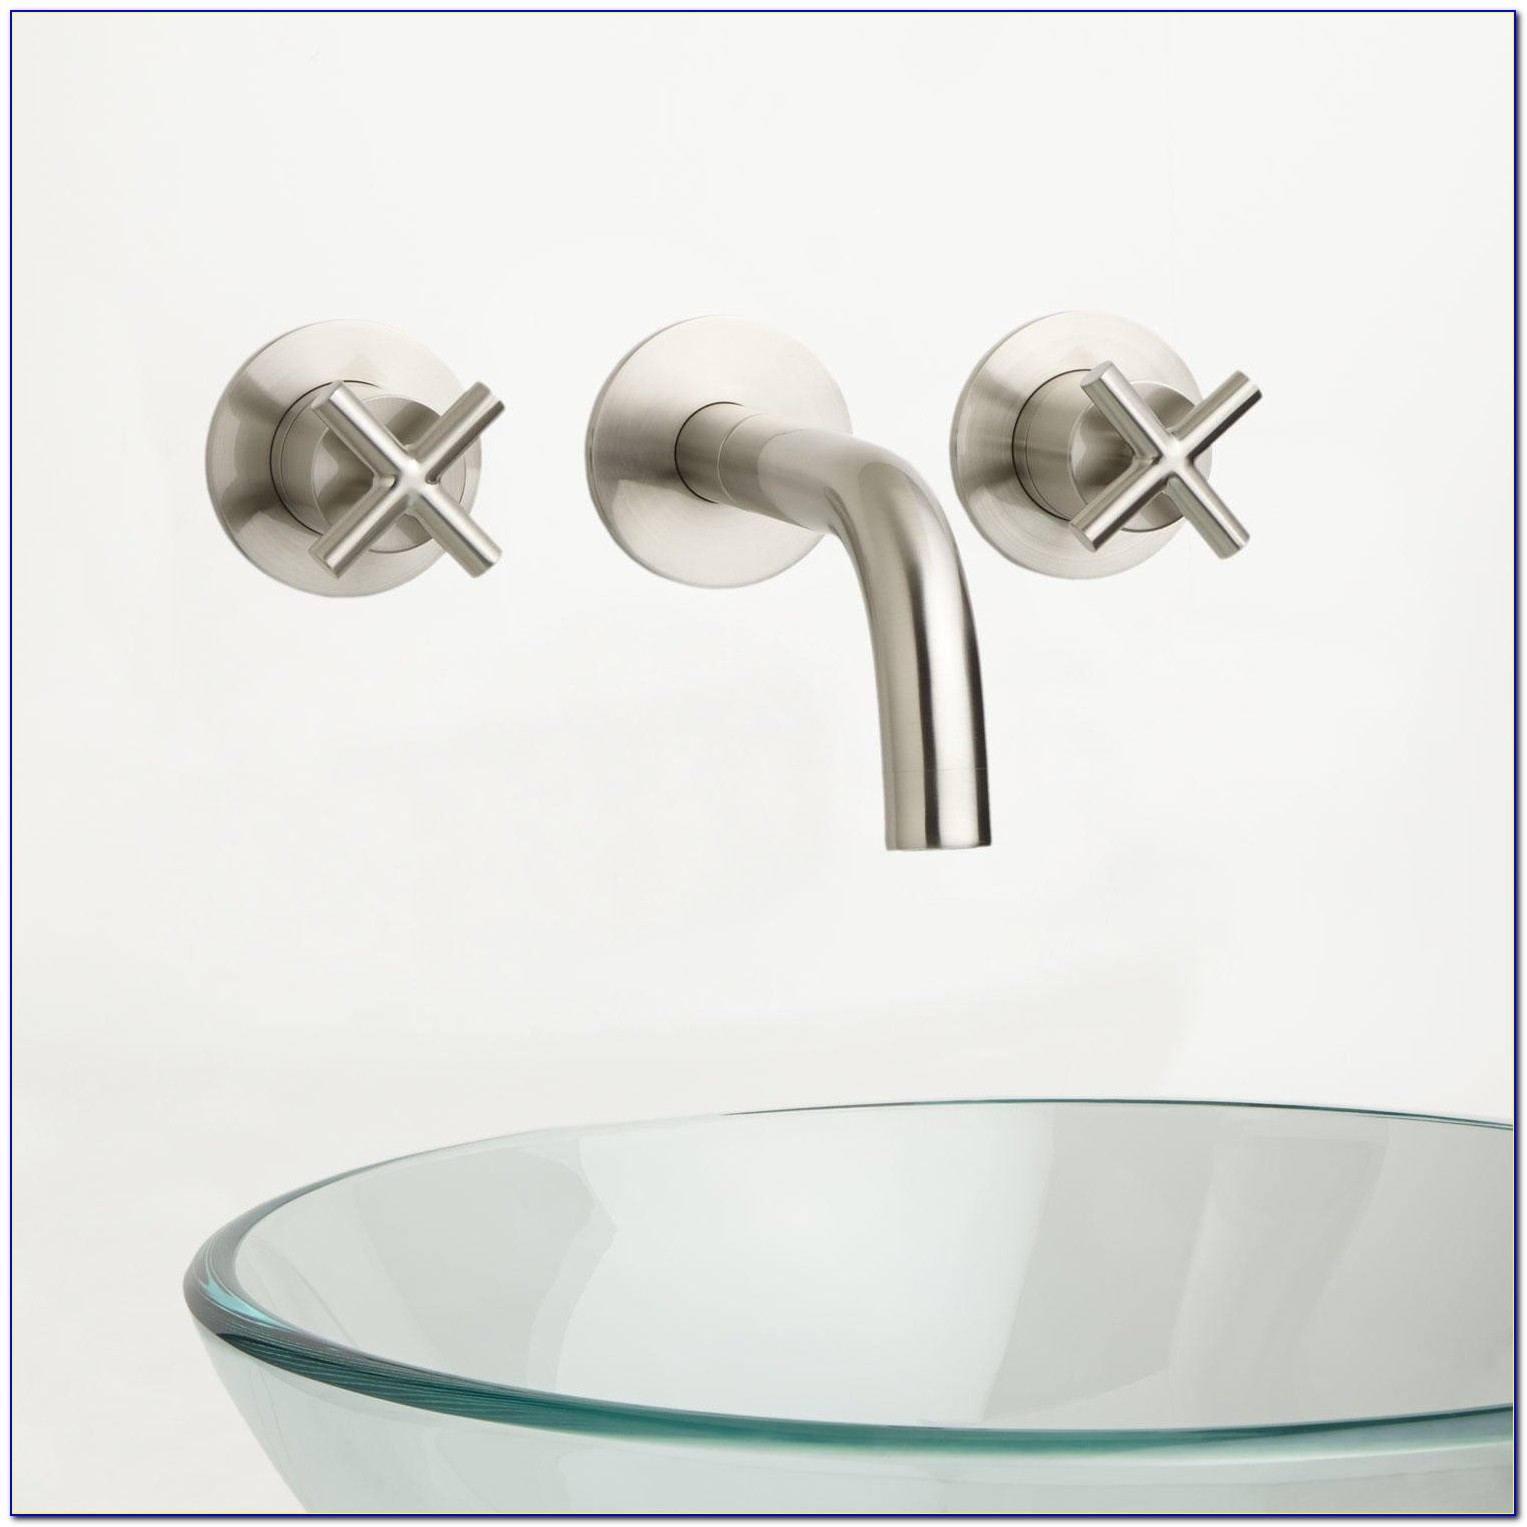 Wall Mount Faucet Height For Vessel Sink Wall Mount Faucet Height For Vessel Sink Exira Wall Mount Bathroom Faucet Cross Handles Bathroom 1500 X 1500